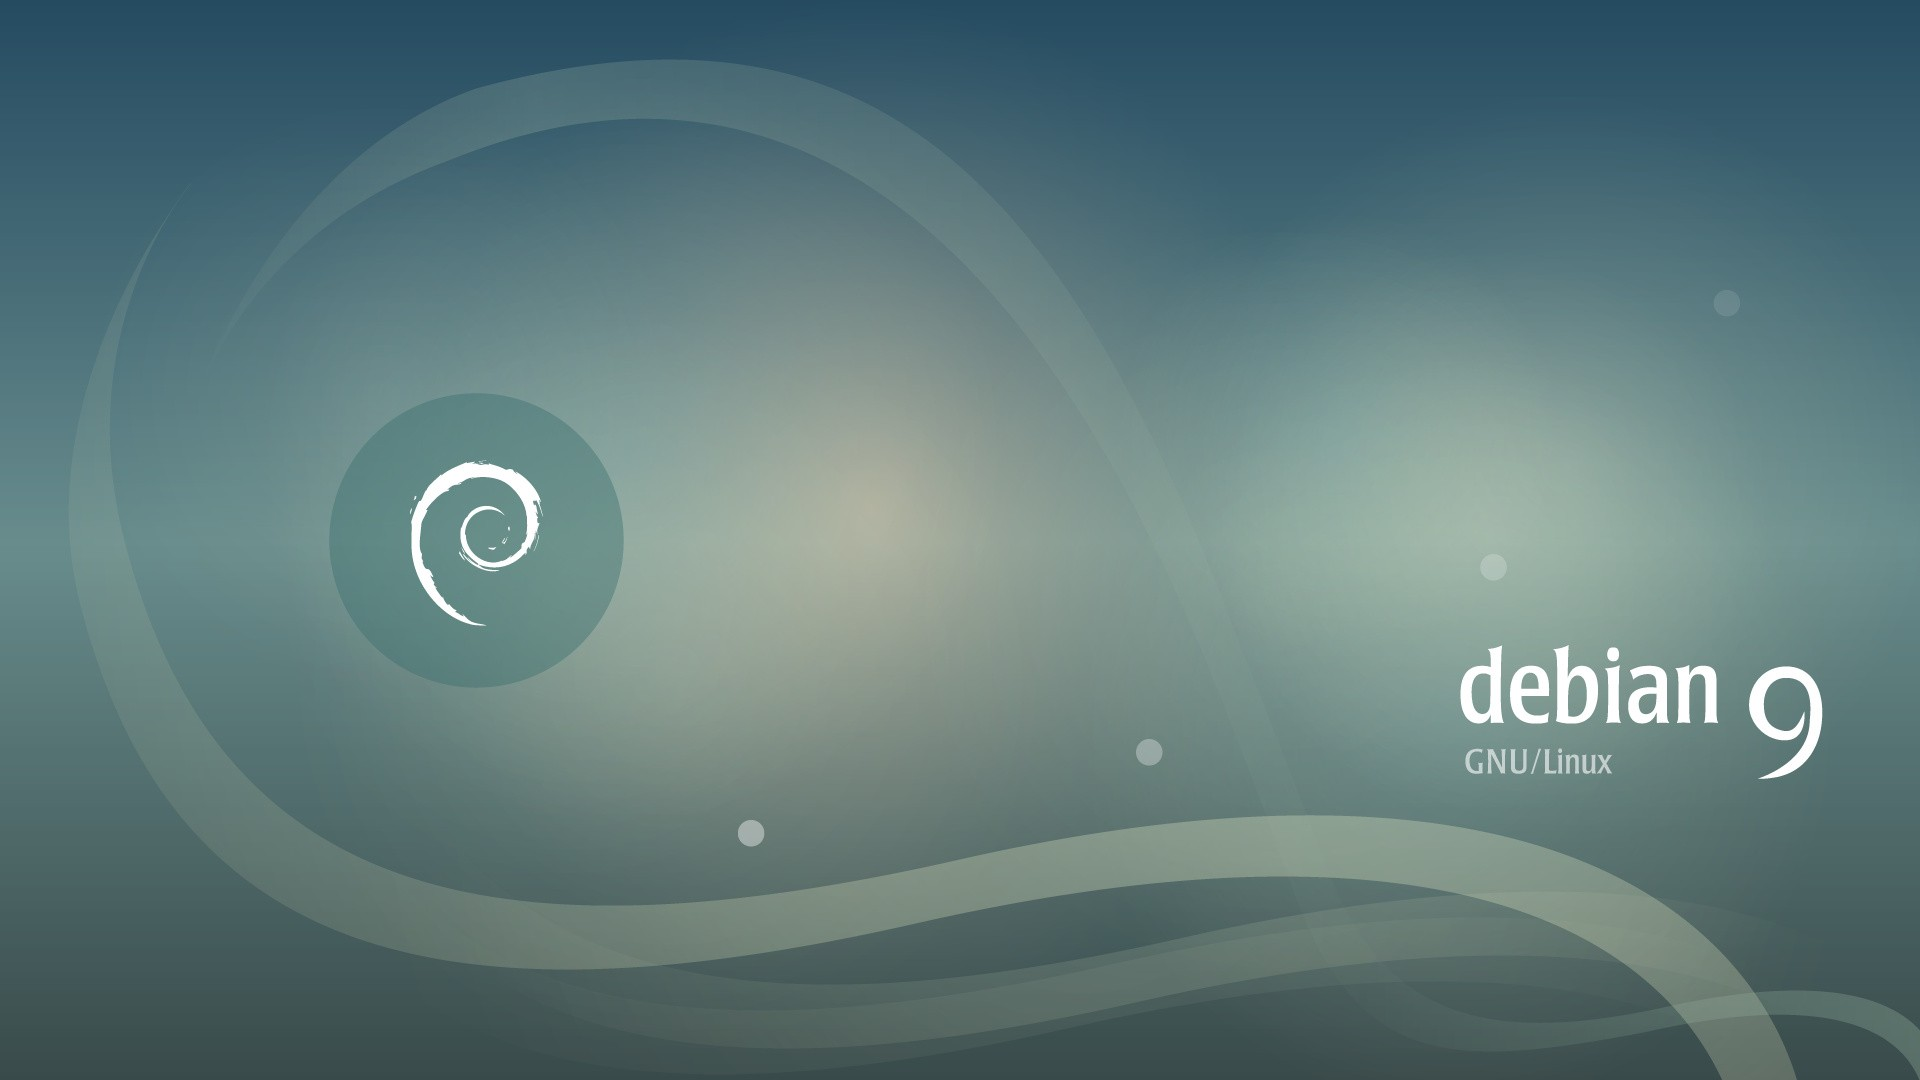 Debian Re Releases All Live Images Of Debian Gnulinux 9